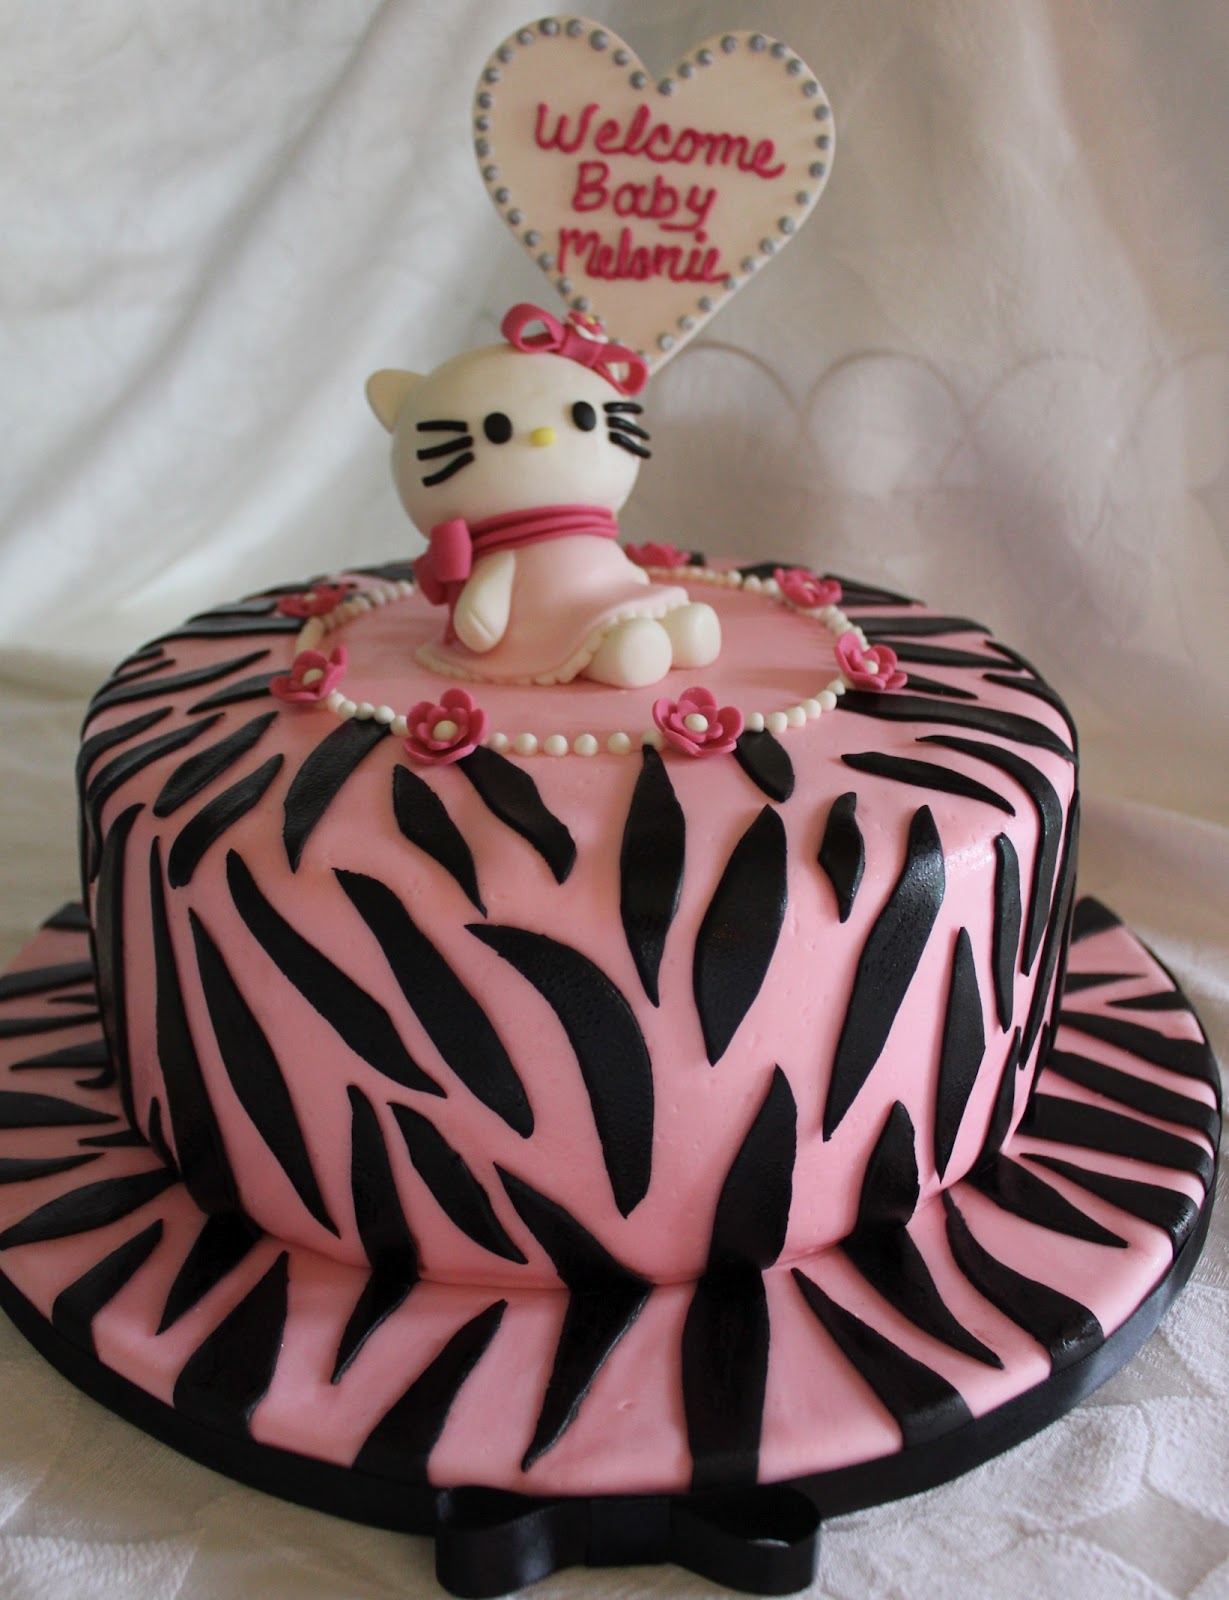 I Made This Cake For A Hello Kitty Themed Baby Shower. I Absolutely Enjoyed  Every Design Element....the Flowers, Colors, Bows, Heart. : )